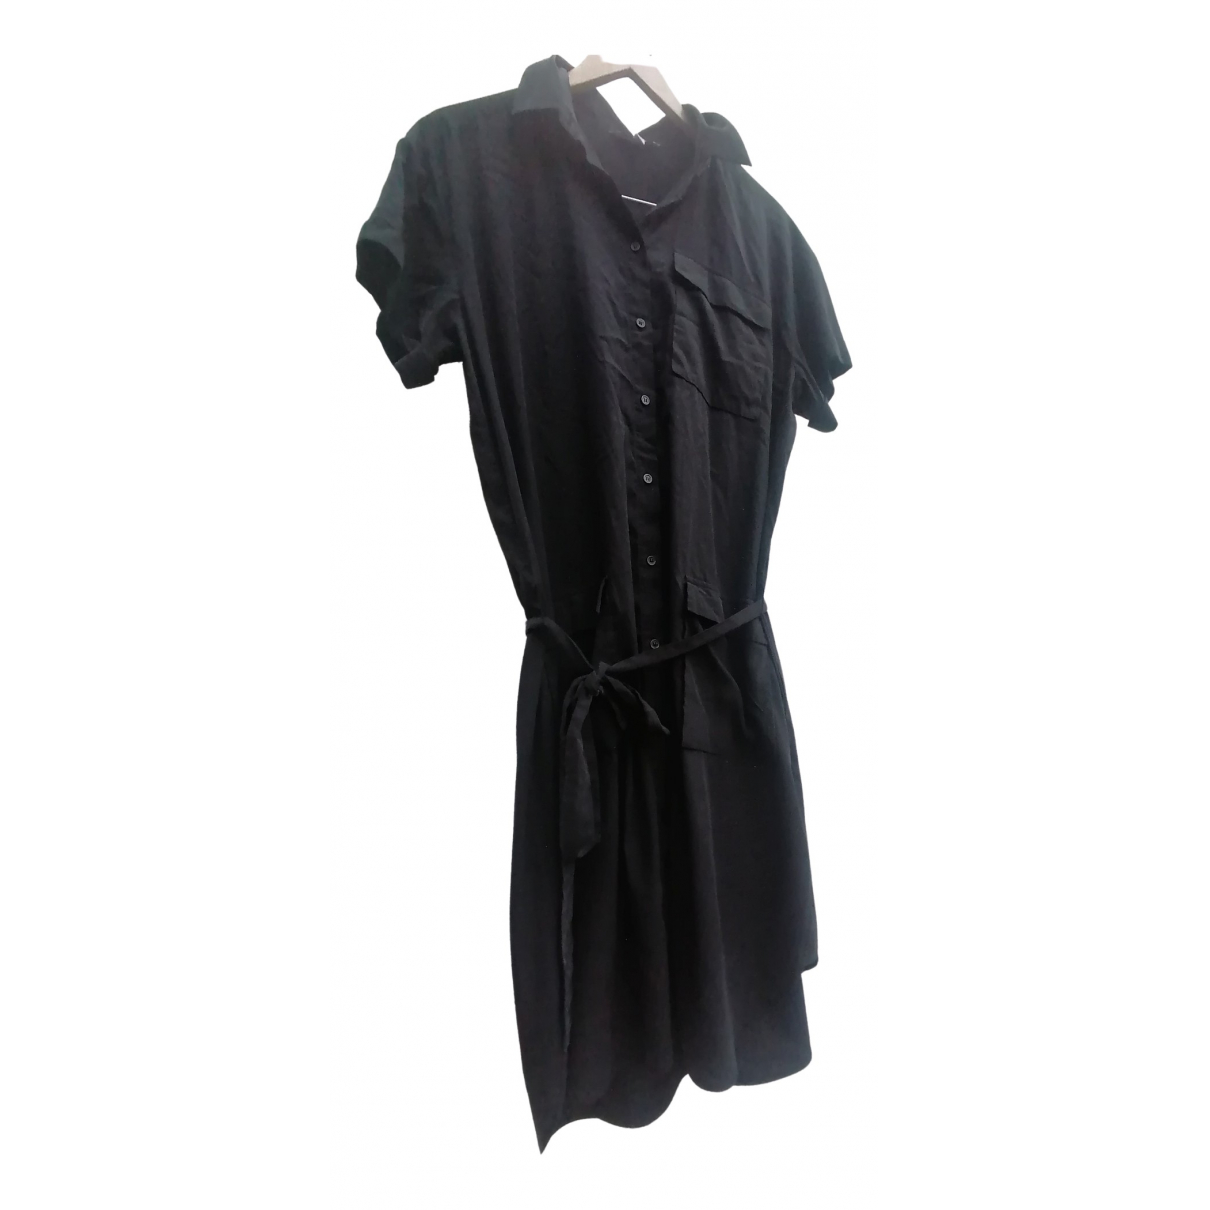 & Other Stories - Robe   pour femme - anthracite